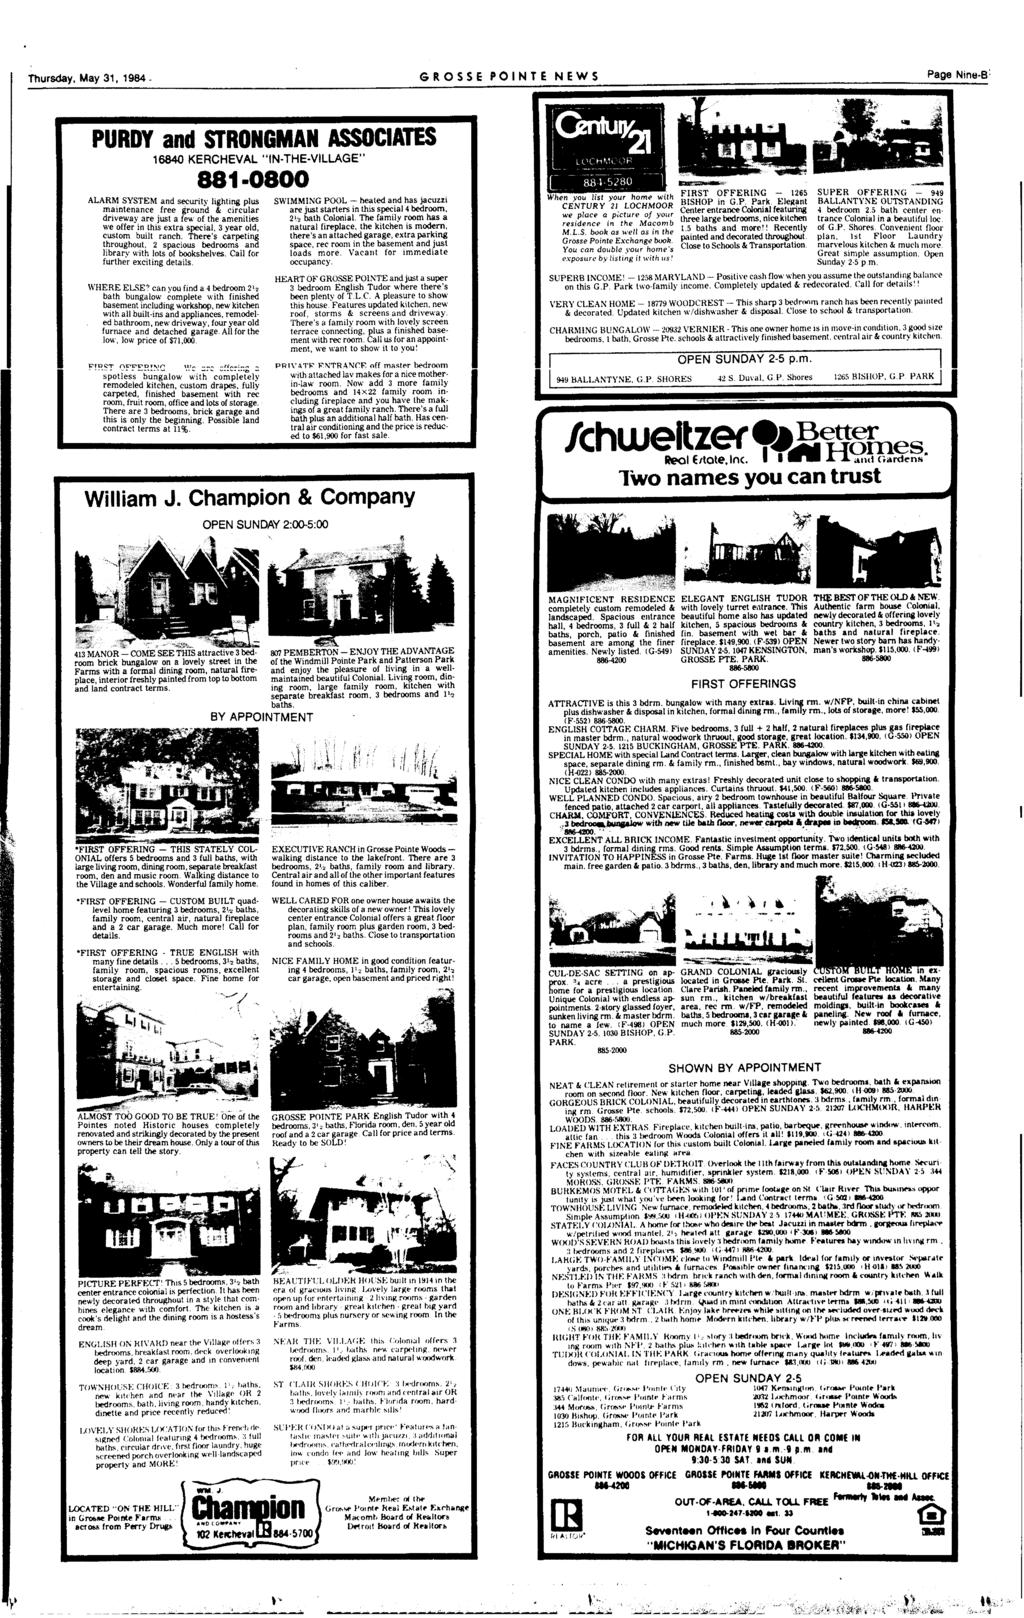 Ws Vol 45 No 22 Grosse Pointe Michigan Thursday May 31 Cents 40 Garbage Disposal Dishwasher Wiring On Garage For Welder 1984 Ponte News Page Nmb Purdy